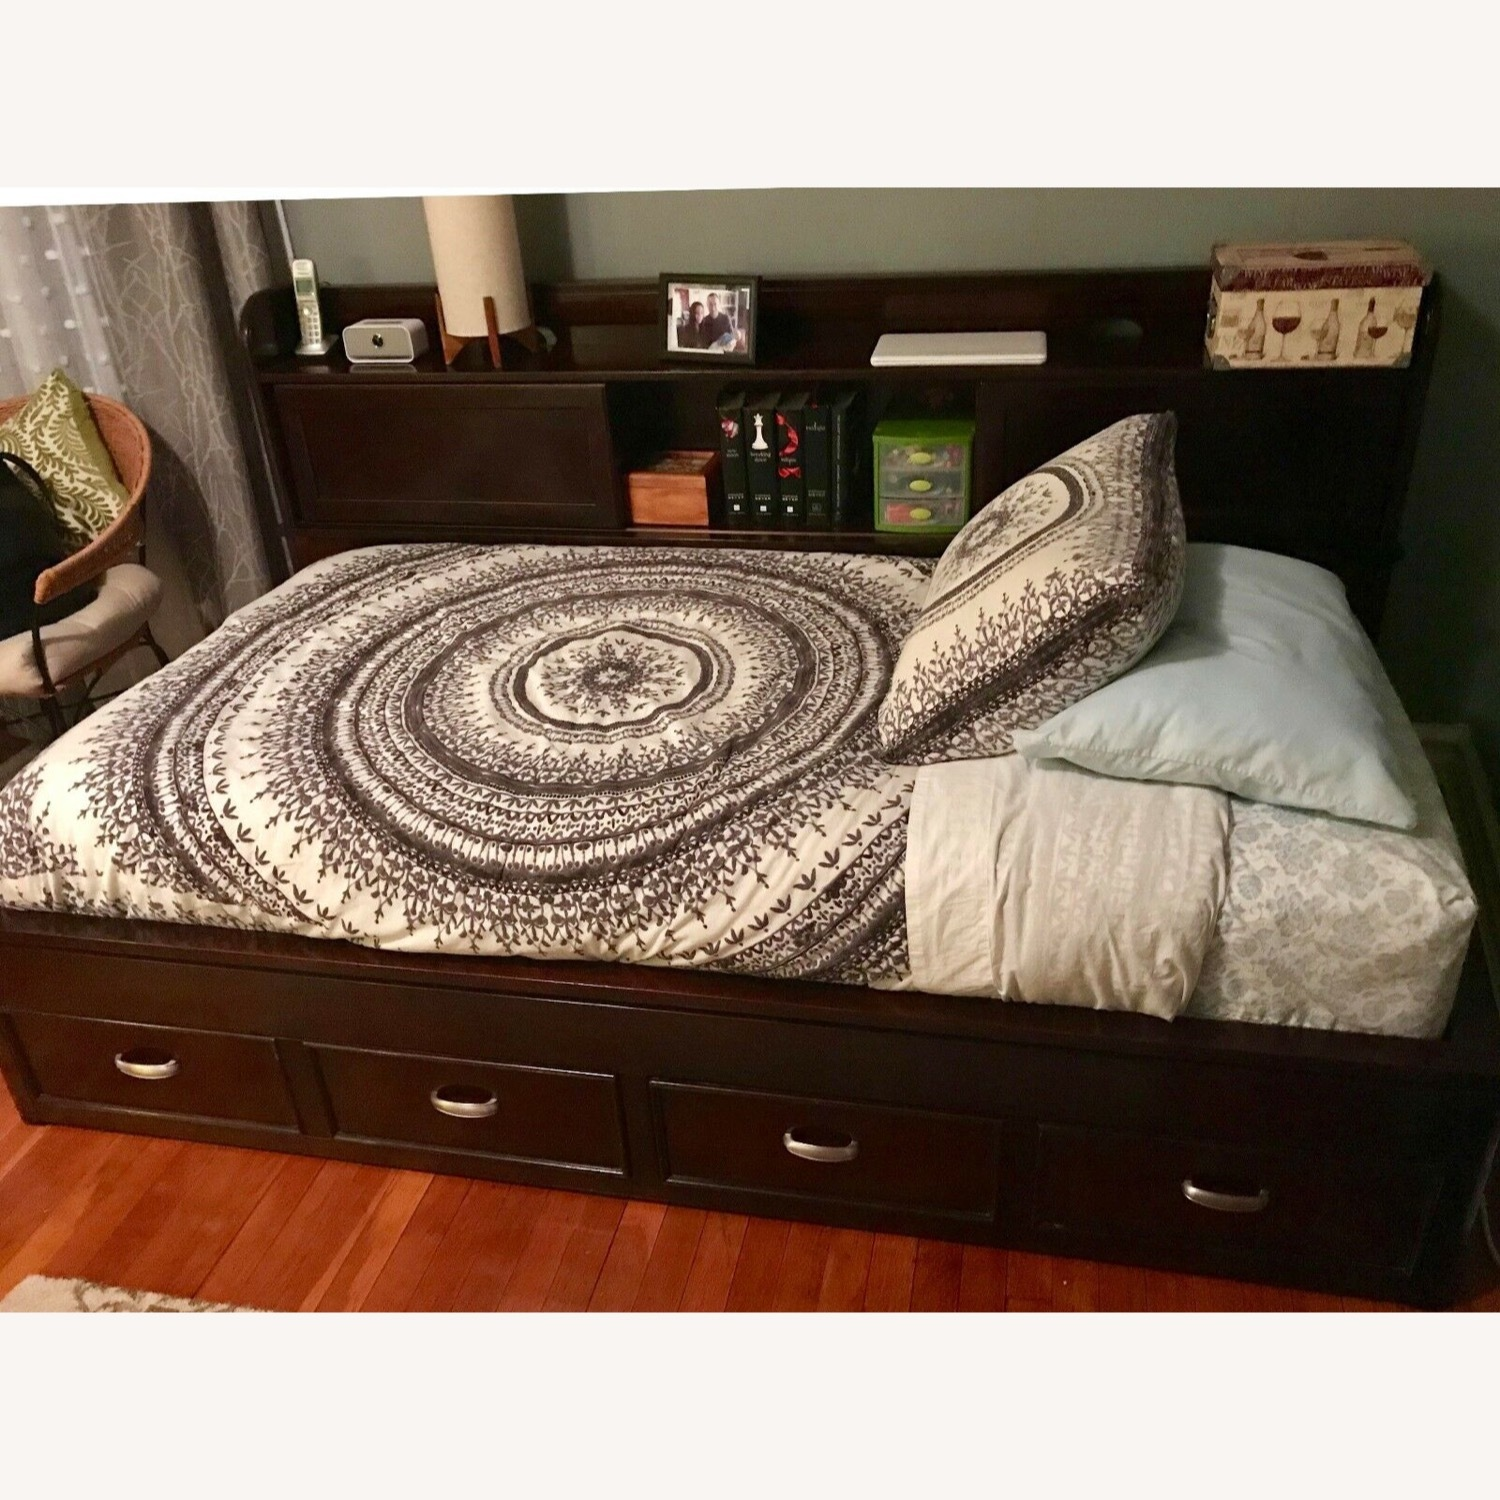 Raymour & Flanigan Twin Bed with Storage - image-1